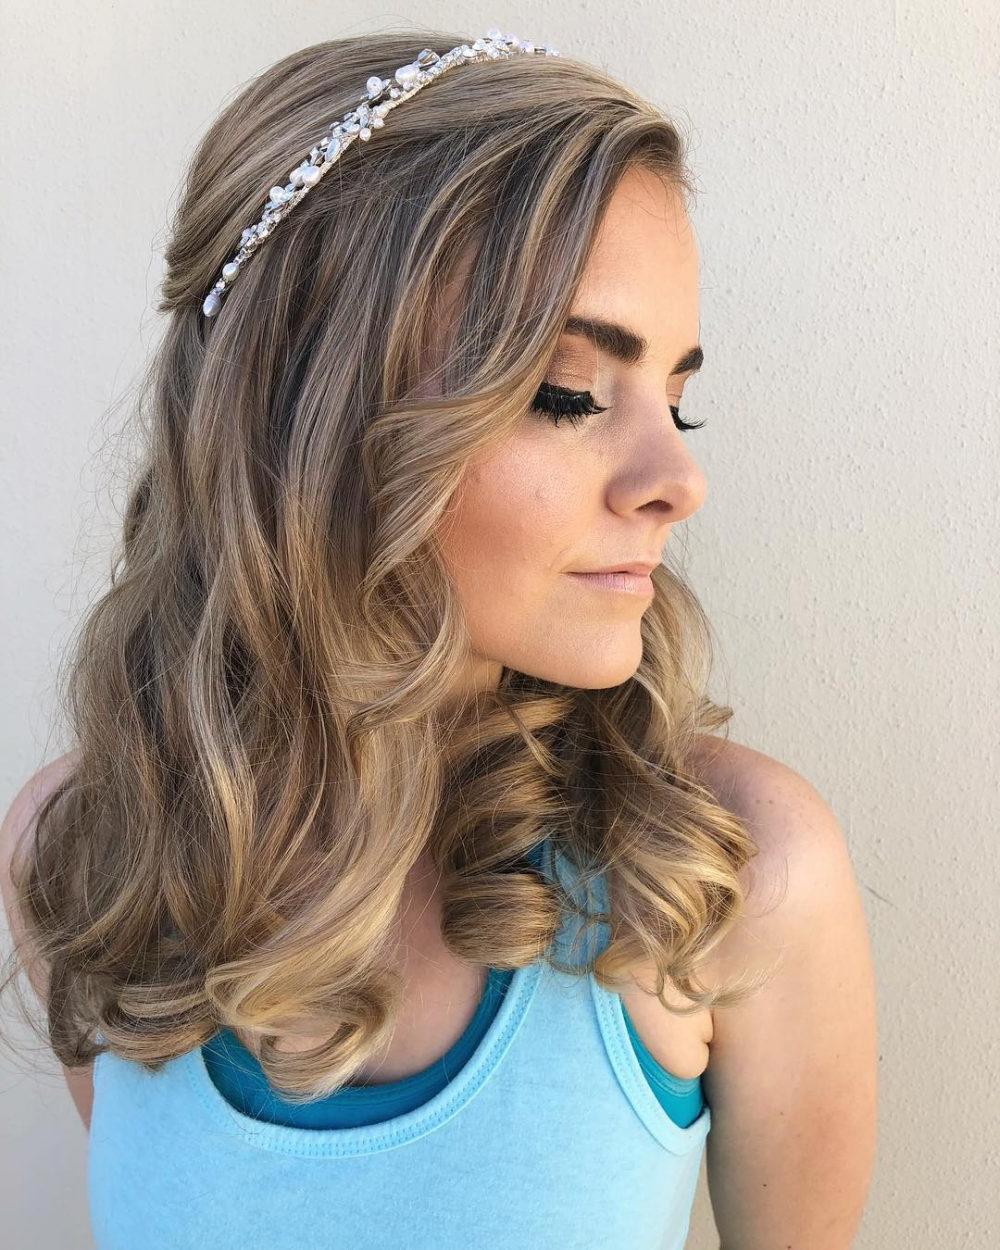 Best And Newest Medium Hairstyles For Formal Event In Prom Hairstyles For Medium Length Hair – Pictures And How To's (View 9 of 20)